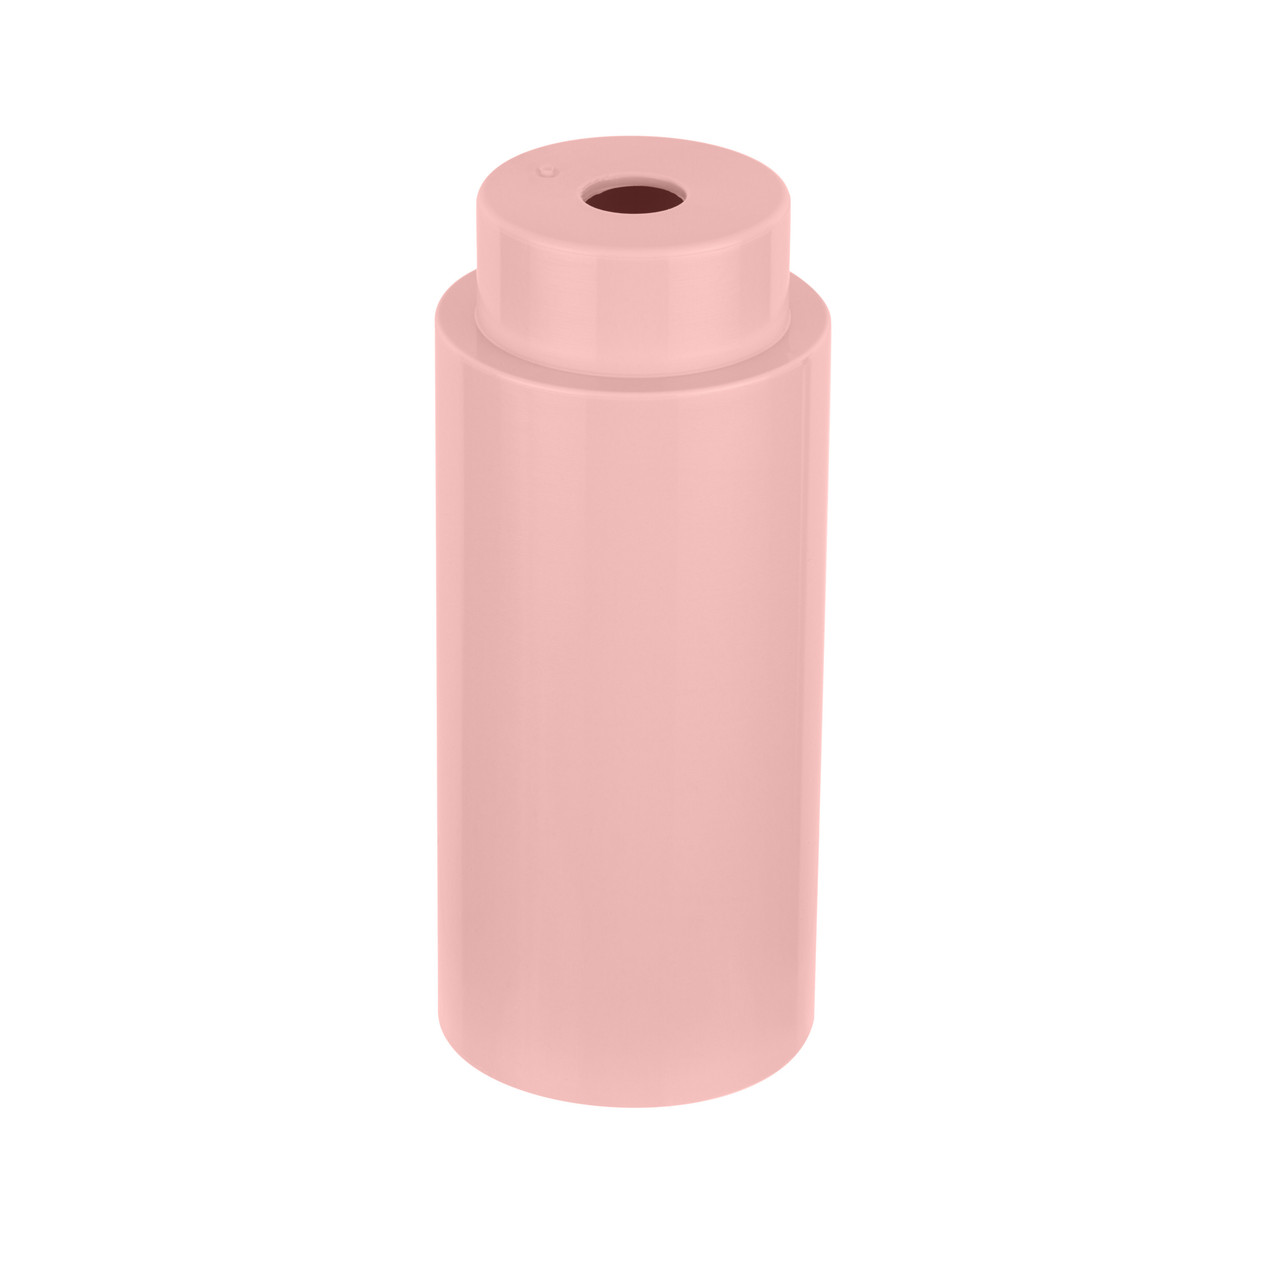 The EverCurve single tube in pink.